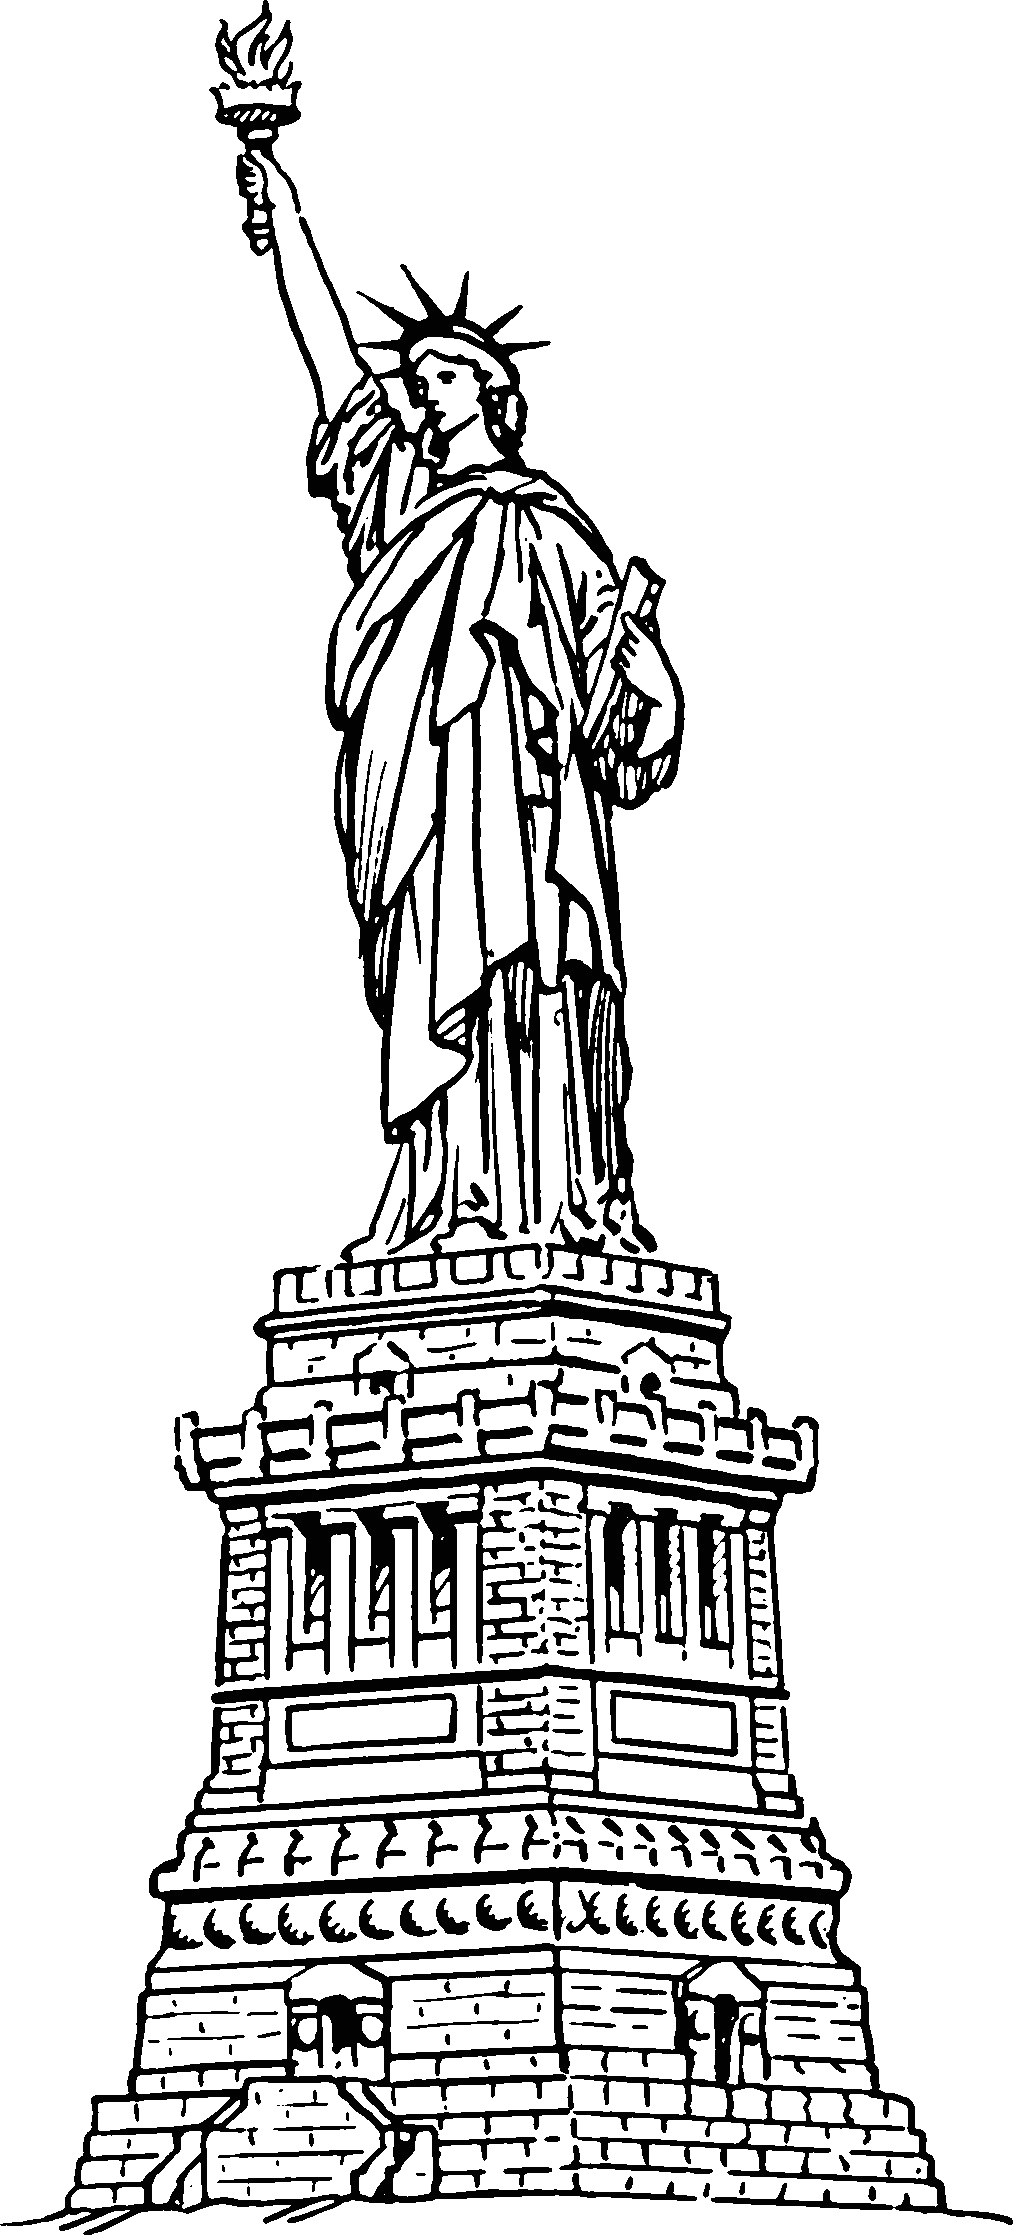 Statue Of Liberty Coloring Pages to Print Free Printable Statue Of Liberty Coloring Pages for Kids